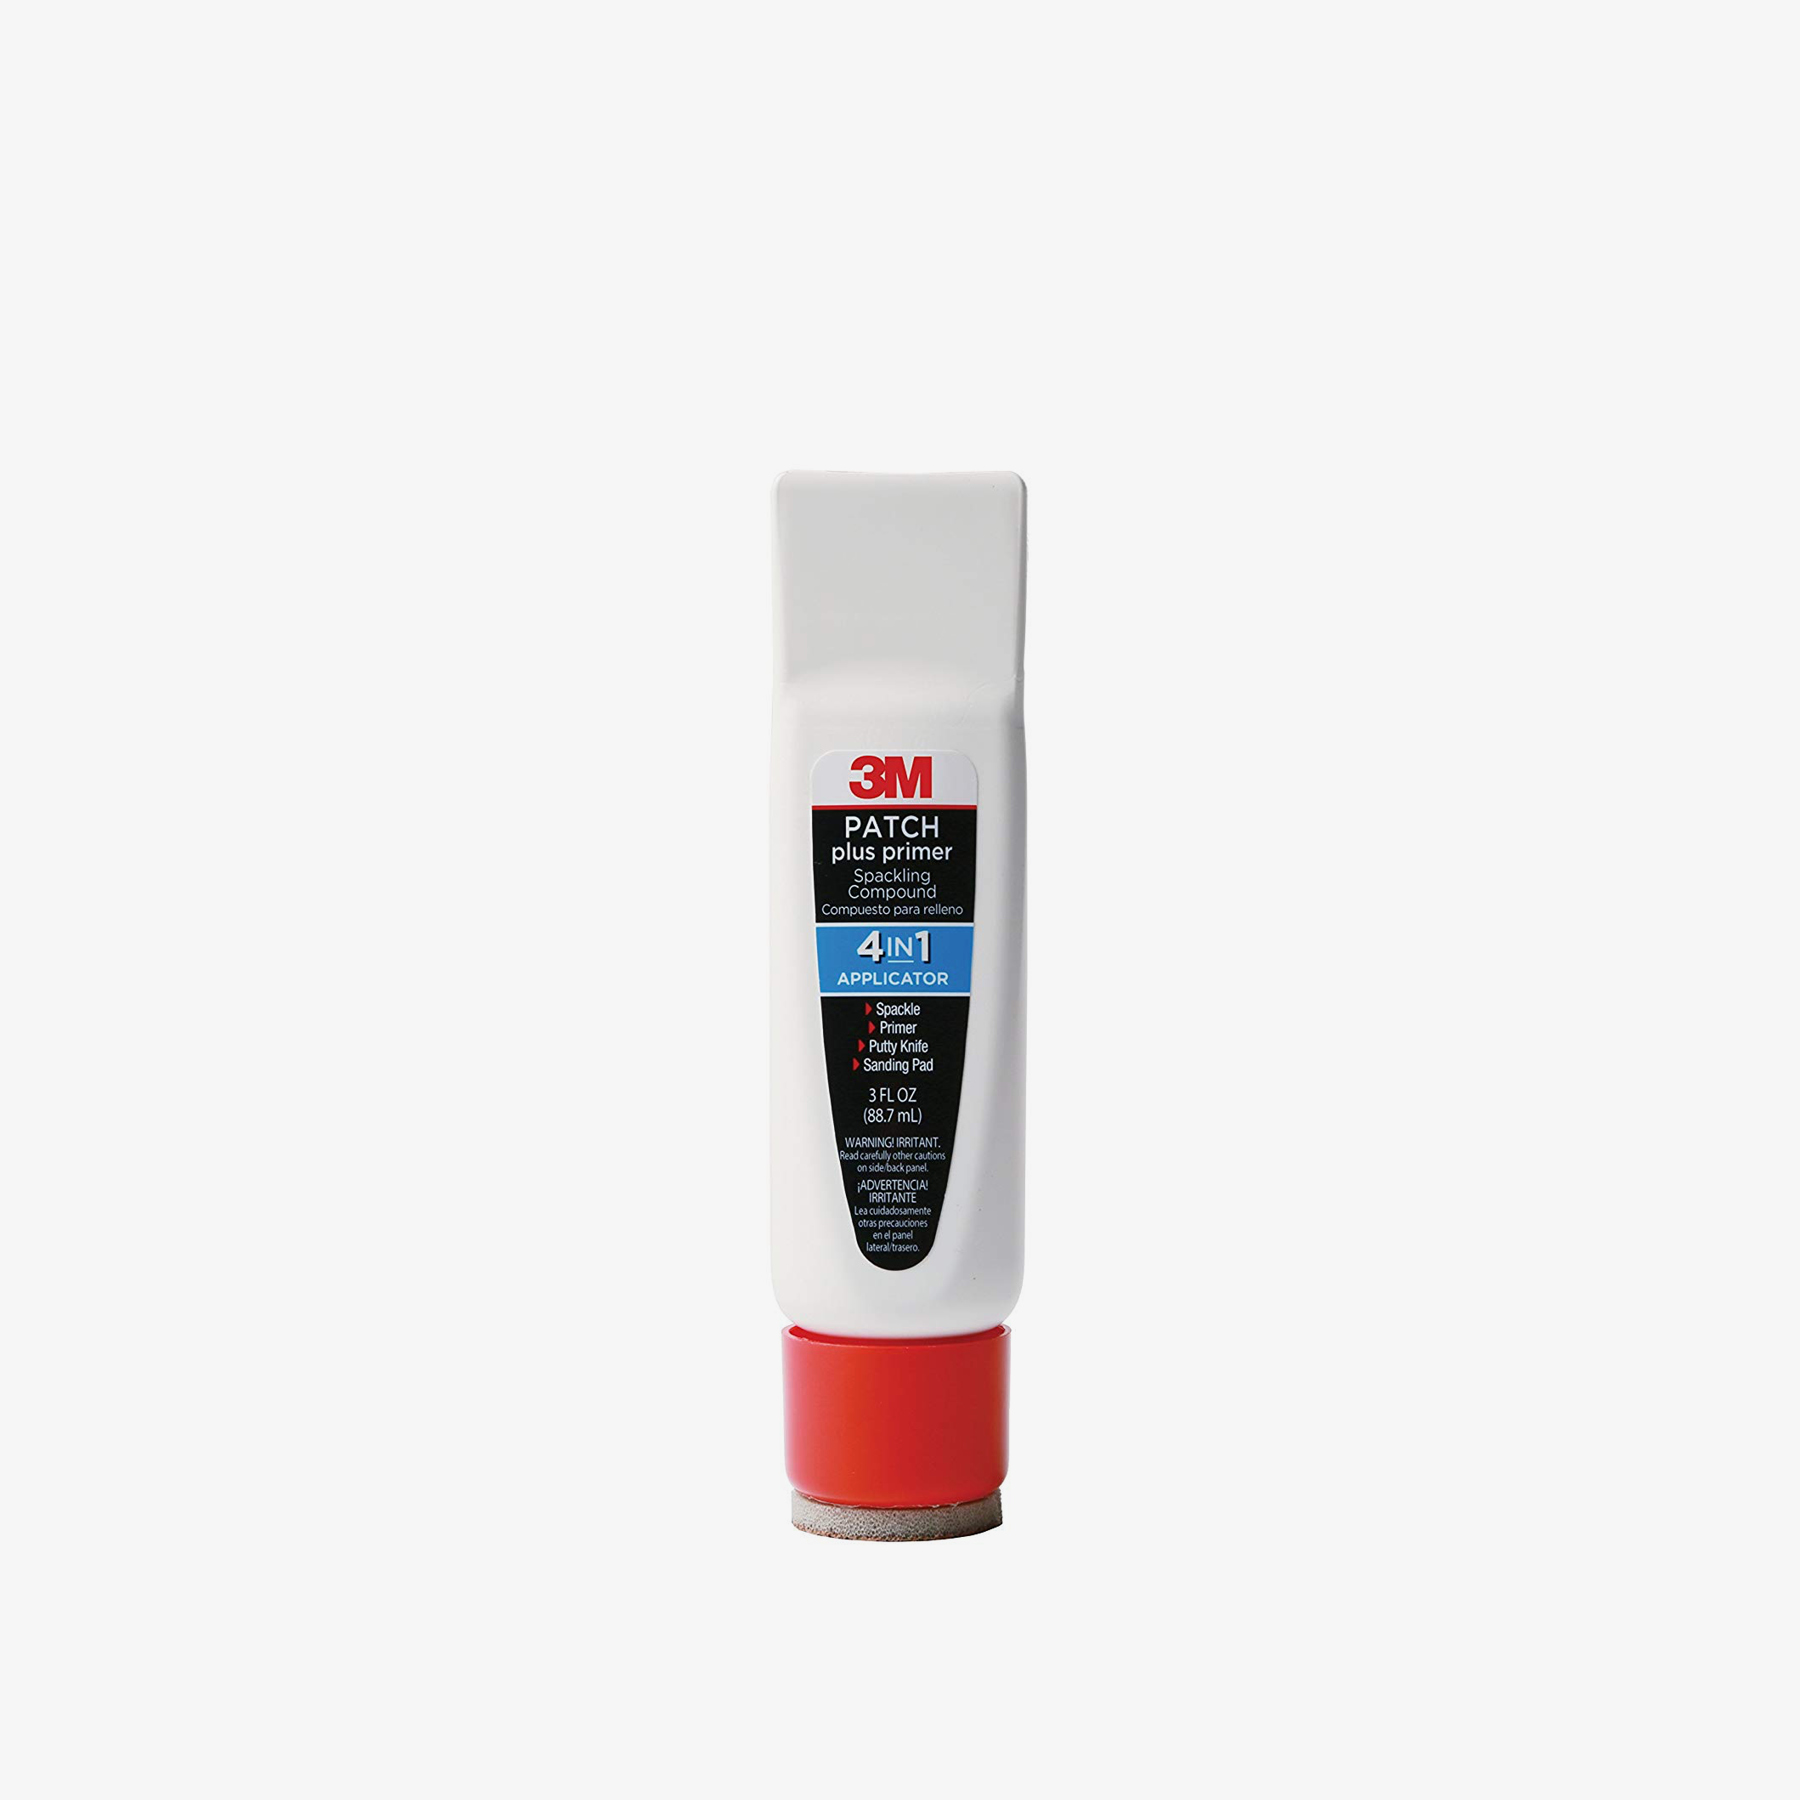 ALL-SORTS-OF-PAINT-SPACKLE